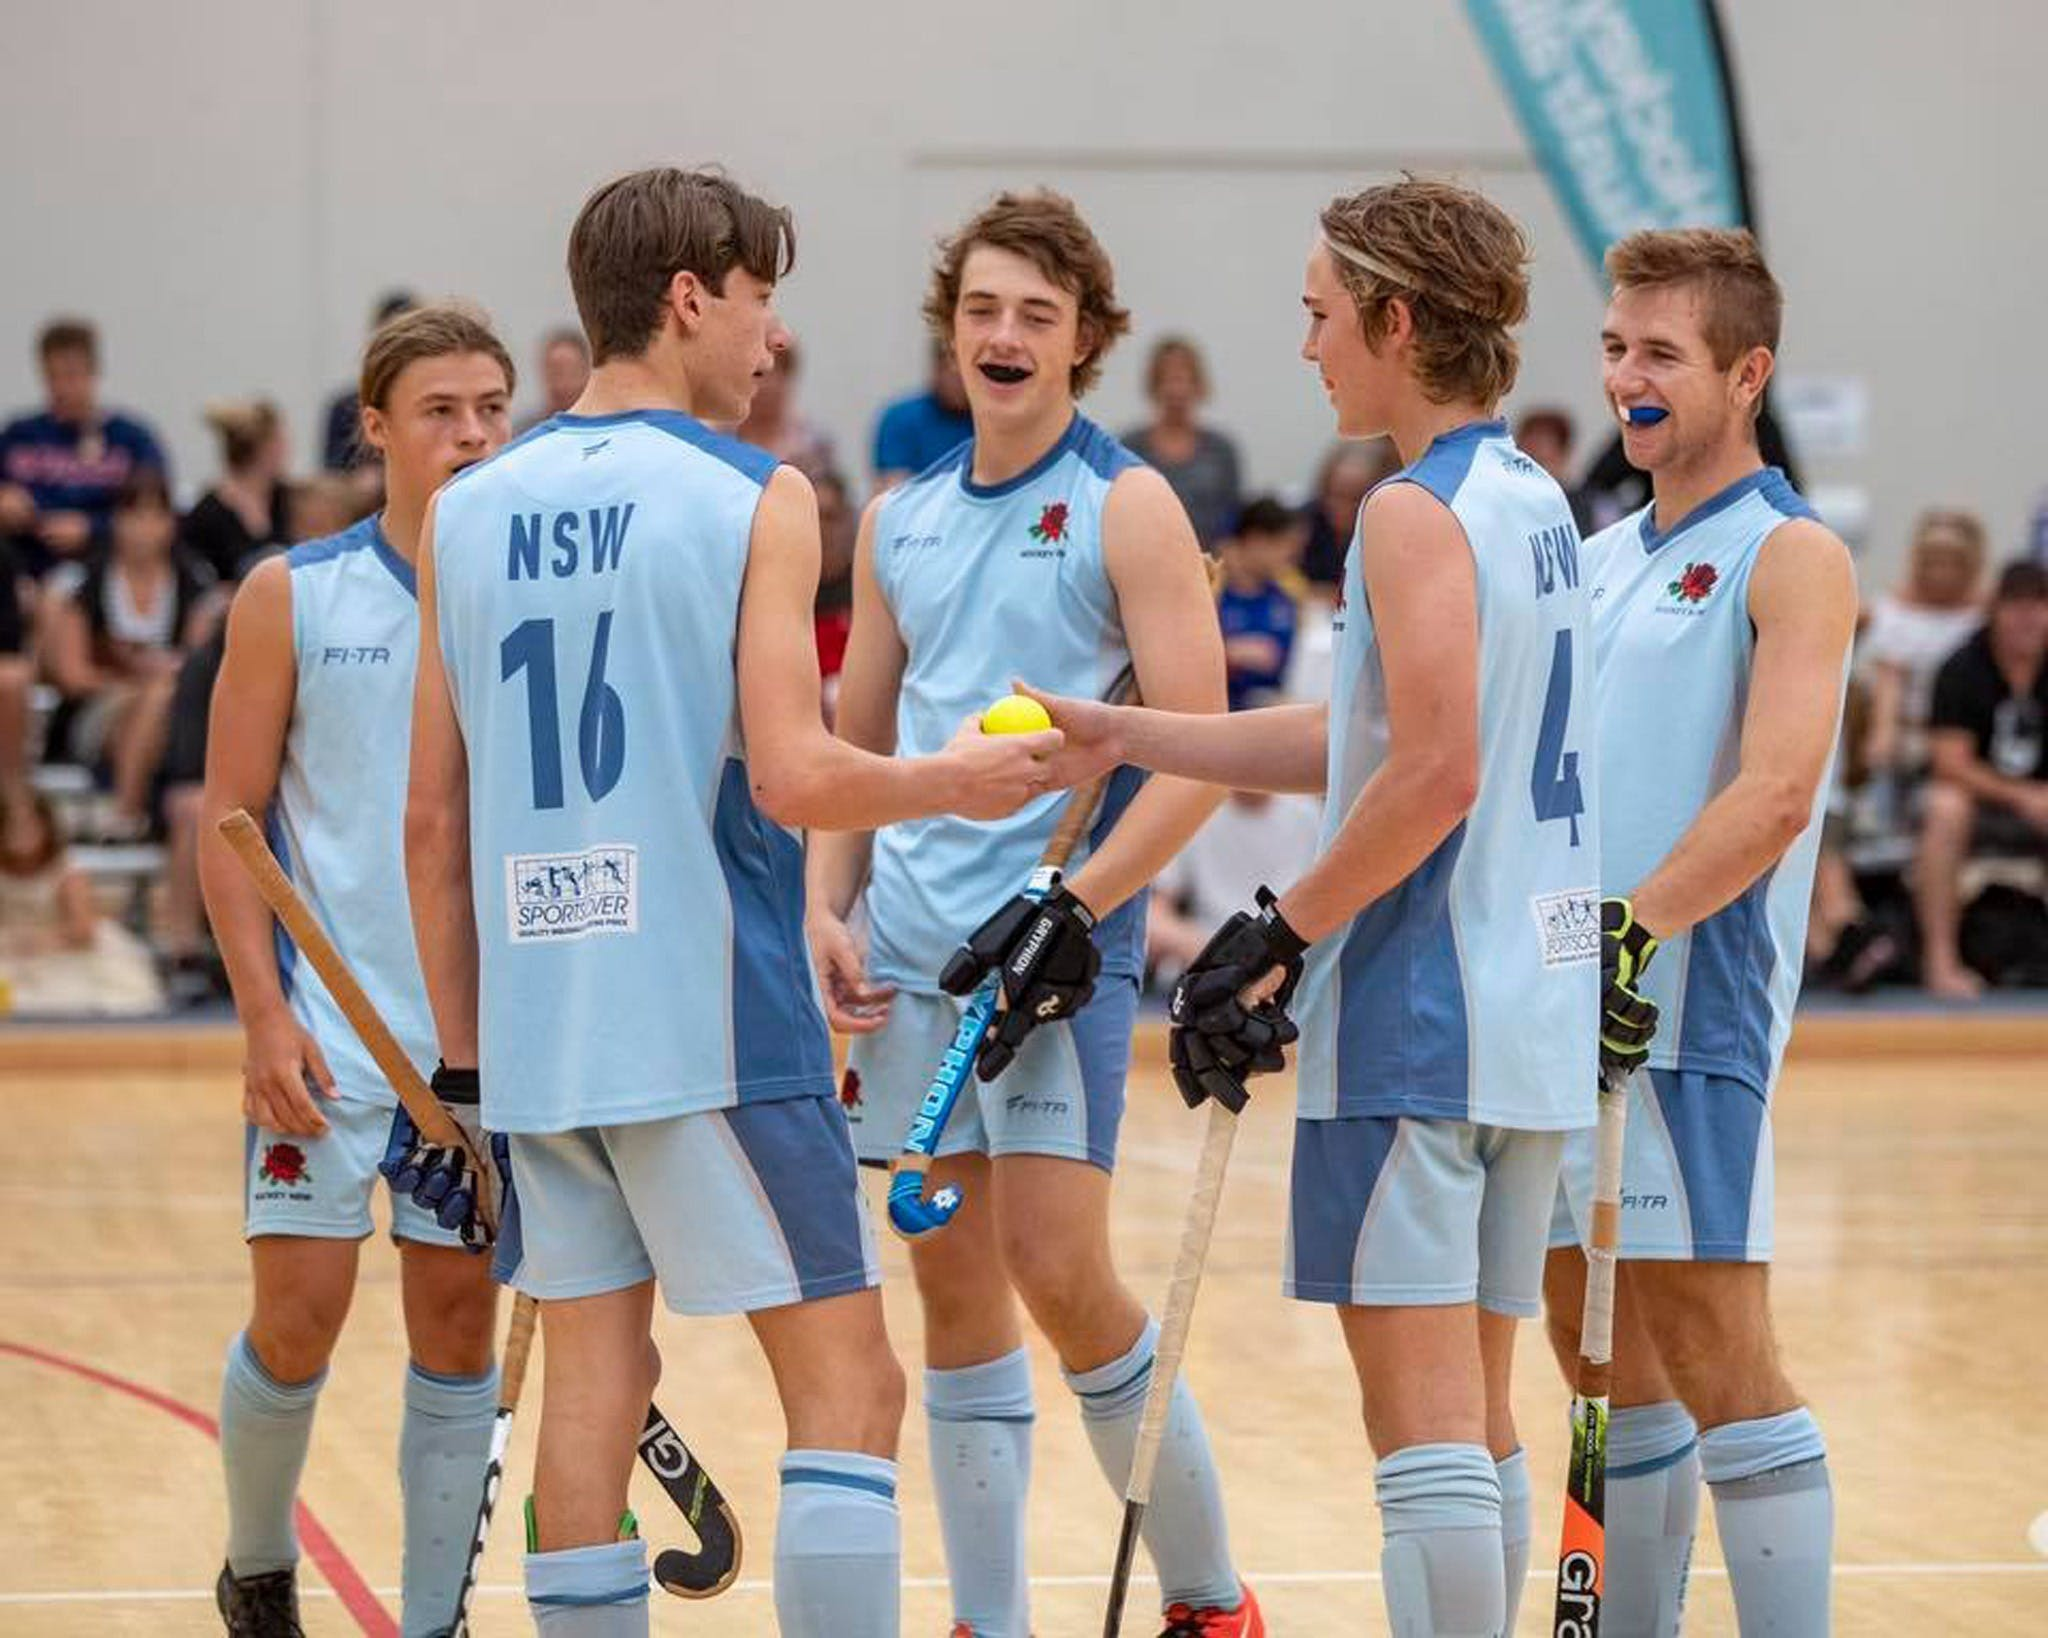 Hockey NSW Indoor State Championship  Open Men - New South Wales Tourism